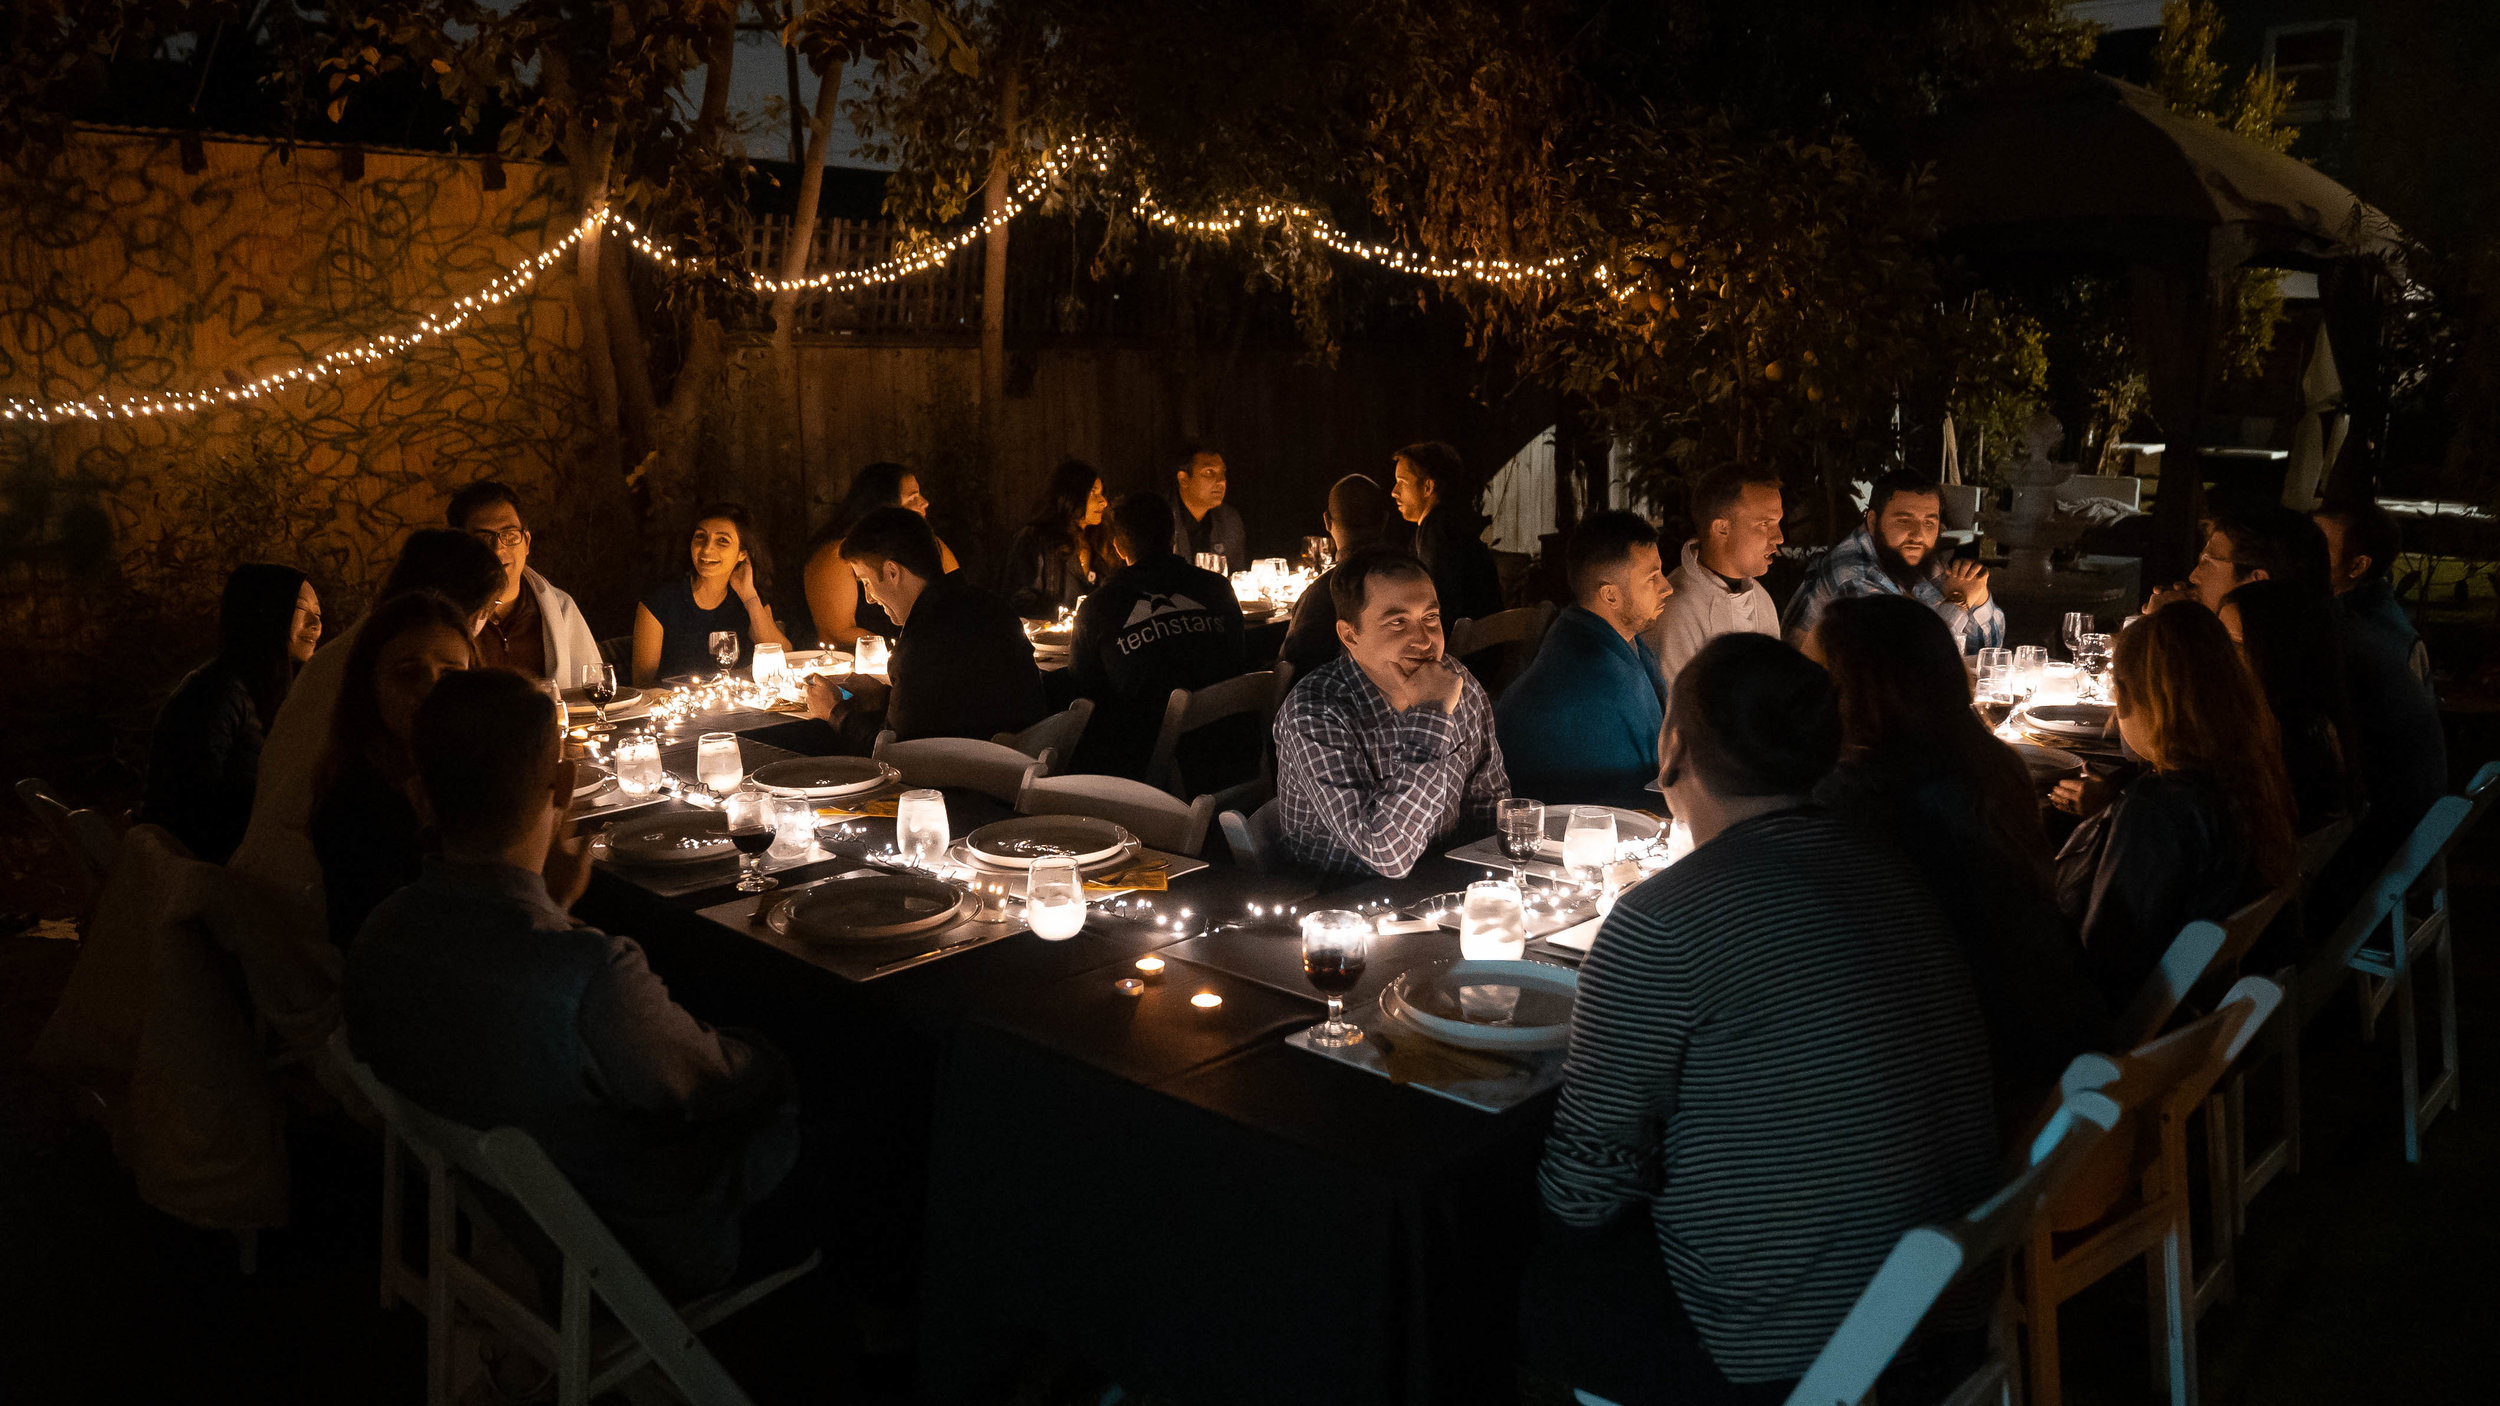 Monthly Social Dinners - Attend one of our social dinners and enjoy the full Hosted experience while meeting great new people. Come solo or invite your friends!